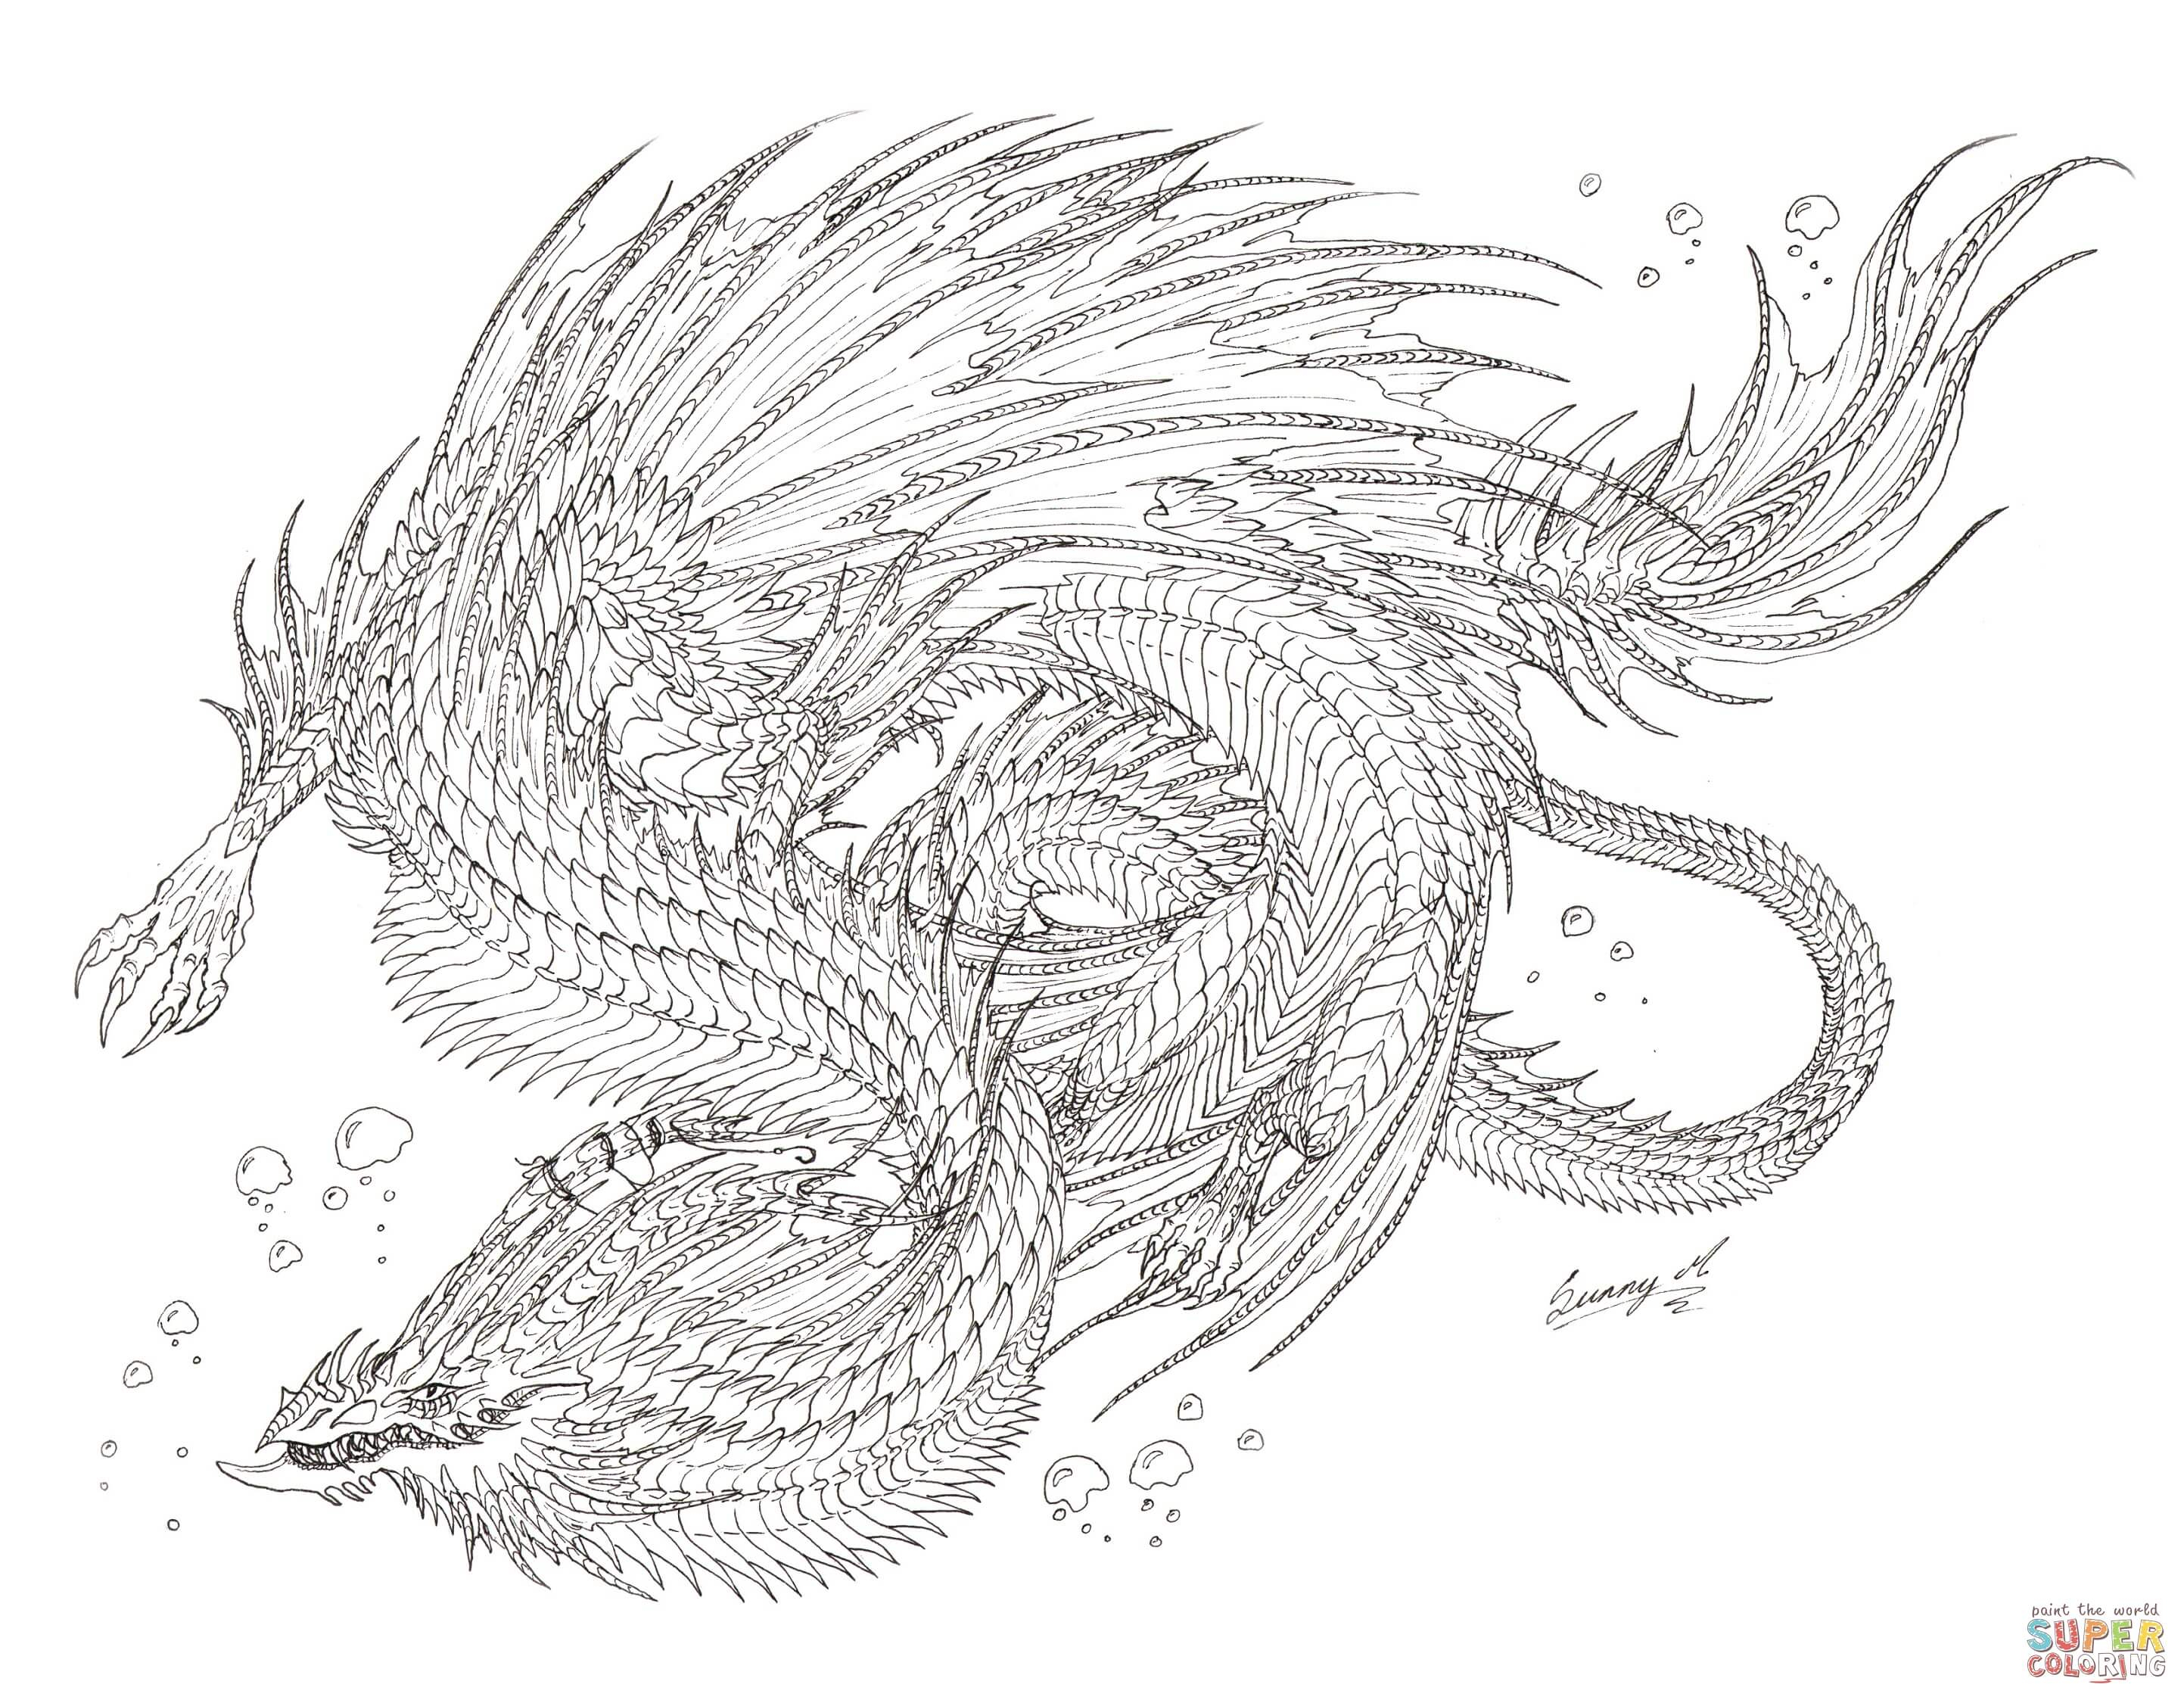 Sea Monster Coloring Pages Sea Serpent Dragon Coloring Page Free Printable Coloring Pages